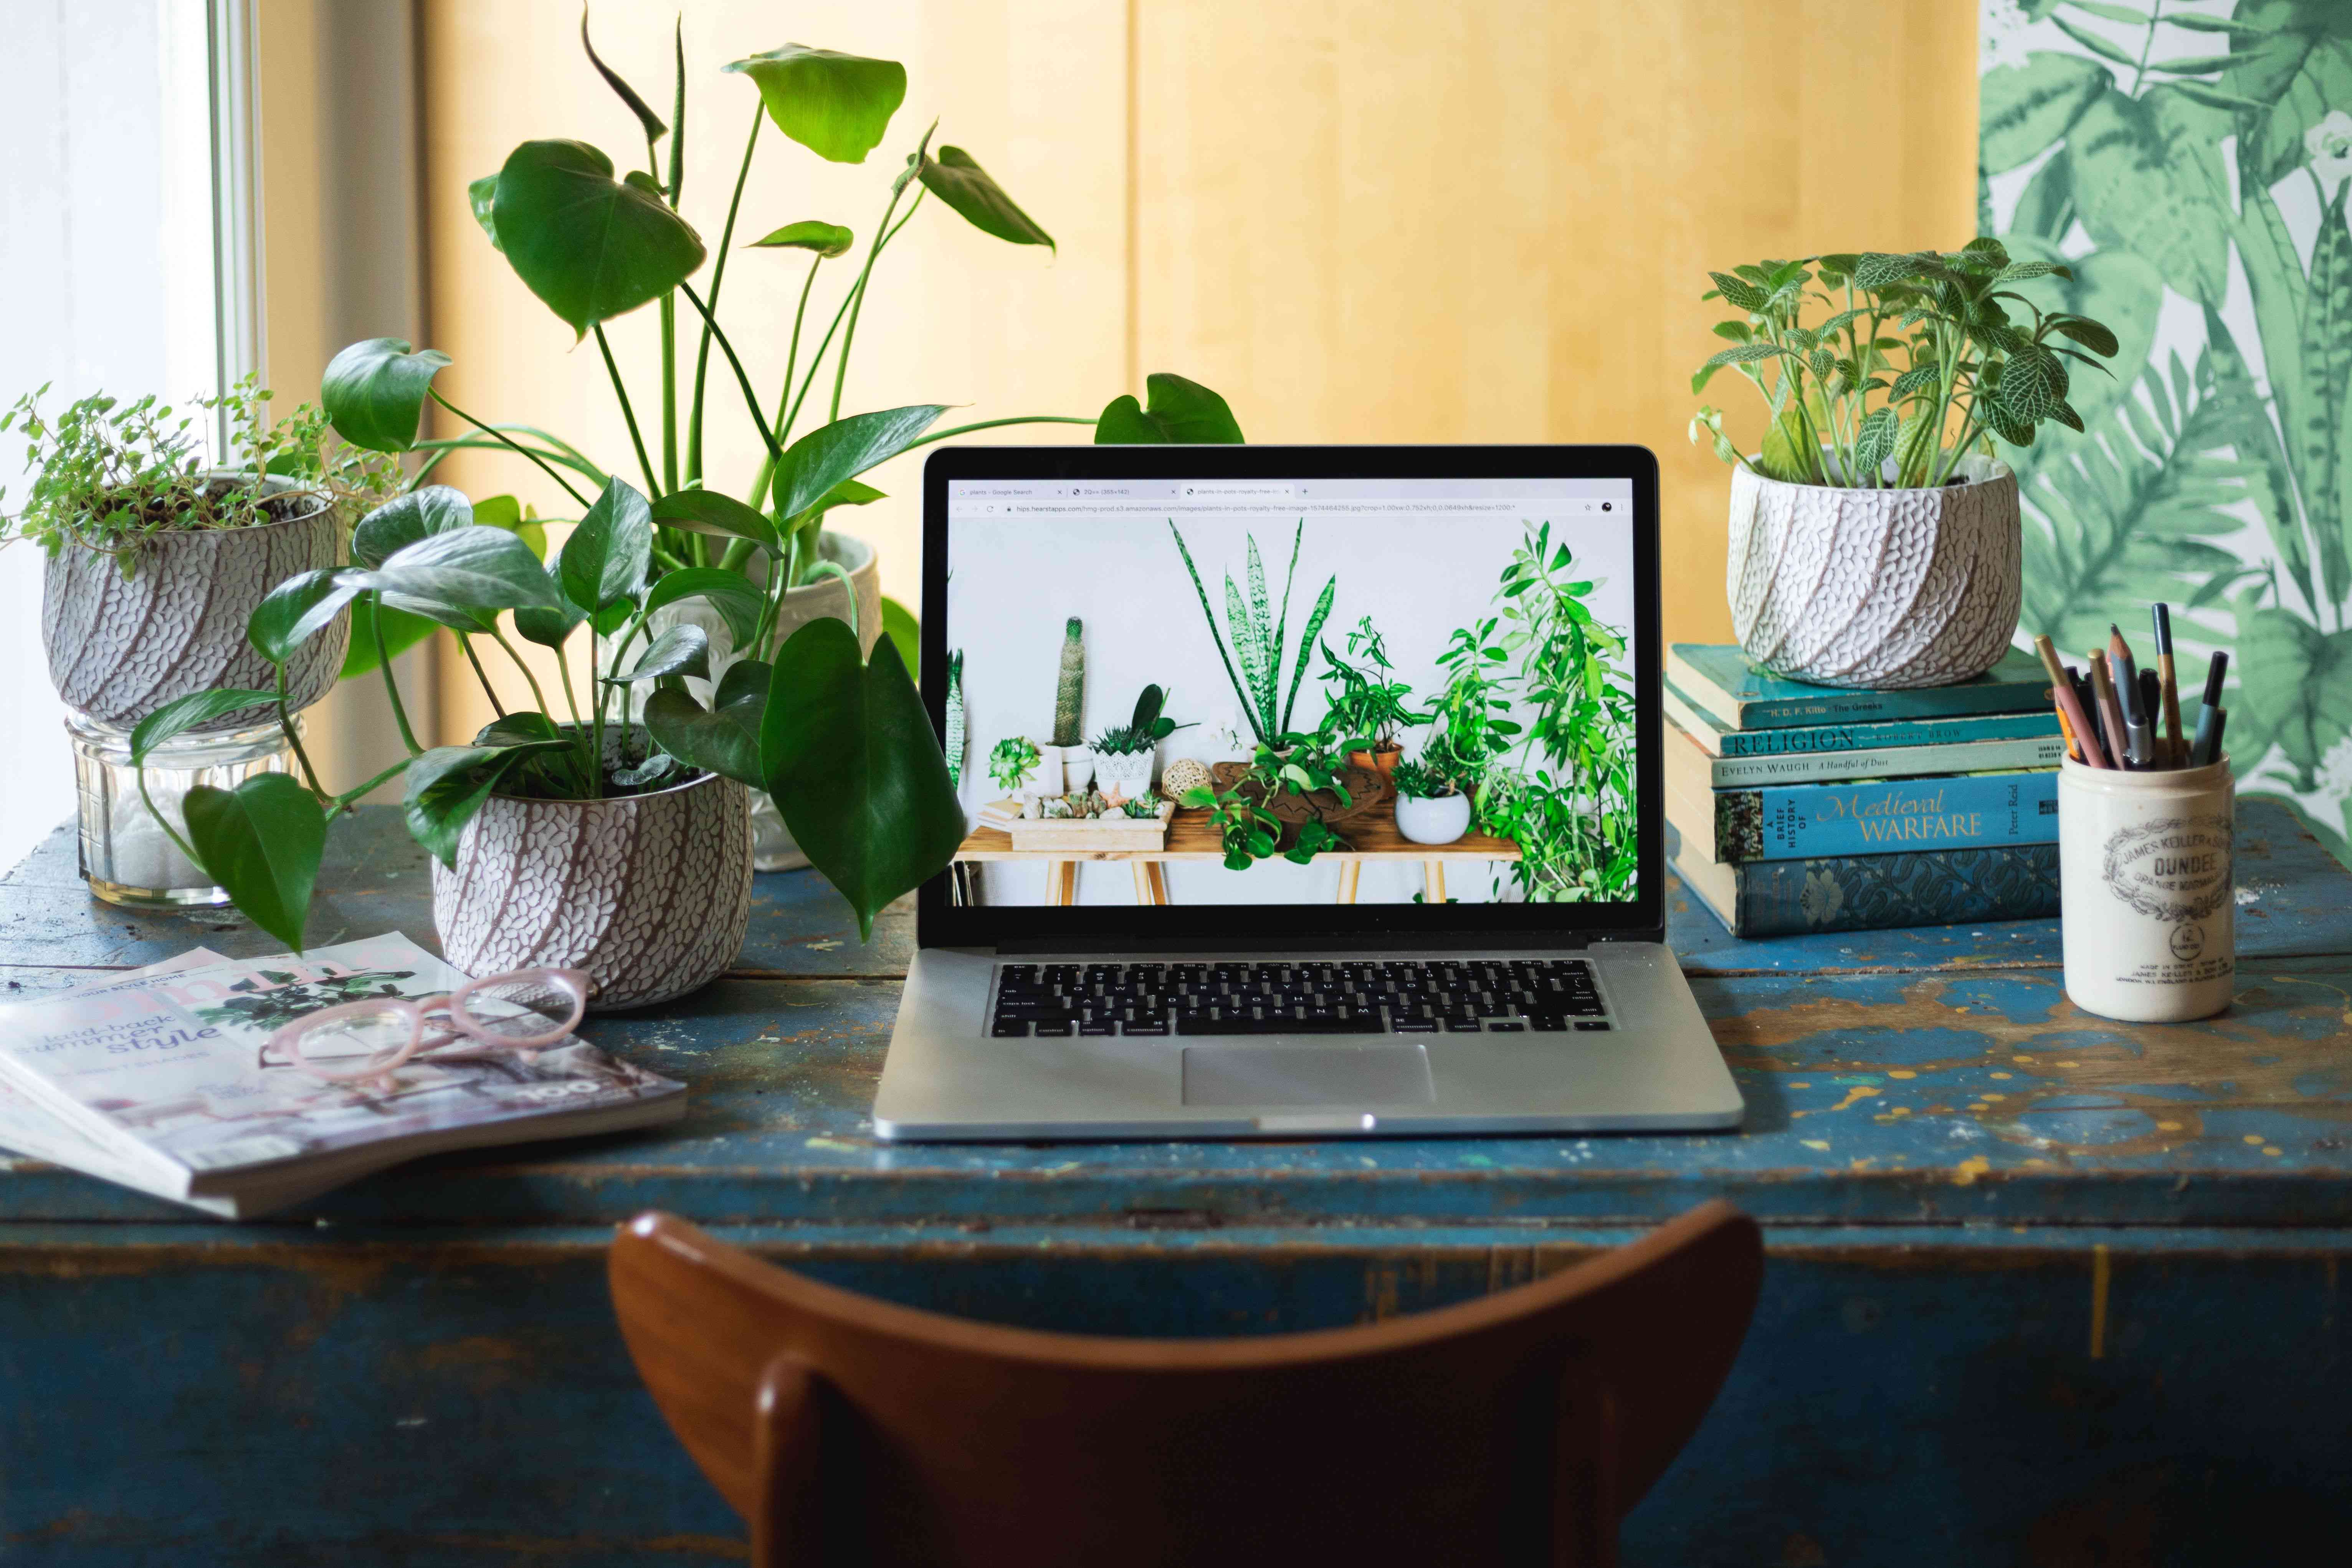 Houseplants searched online with laptop on desk with plants surrounding